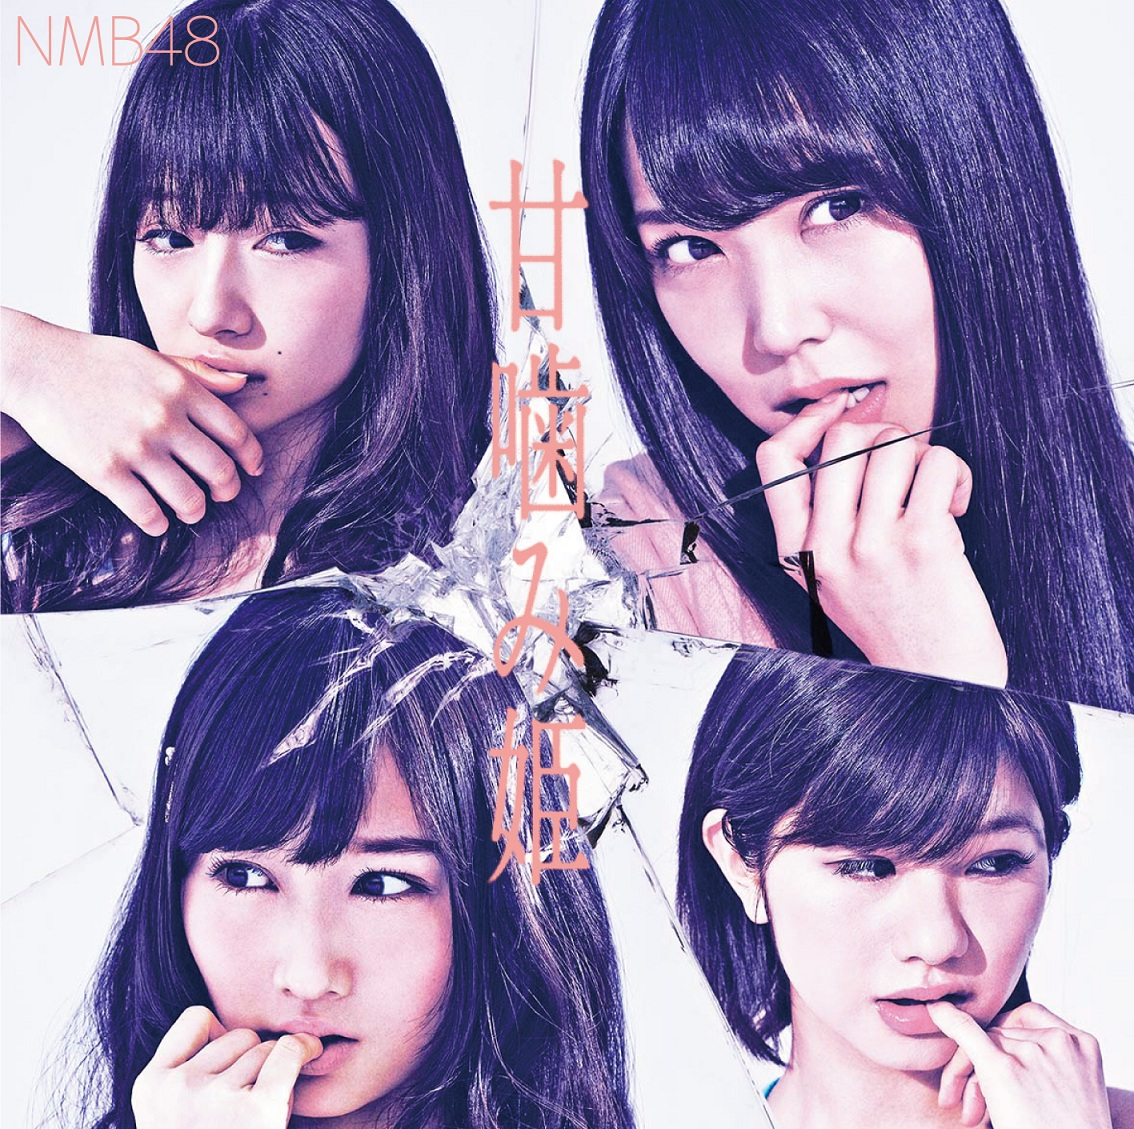 20160423.15.20 NMB48 - Amagami Hime (Type A) cover 2.jpg